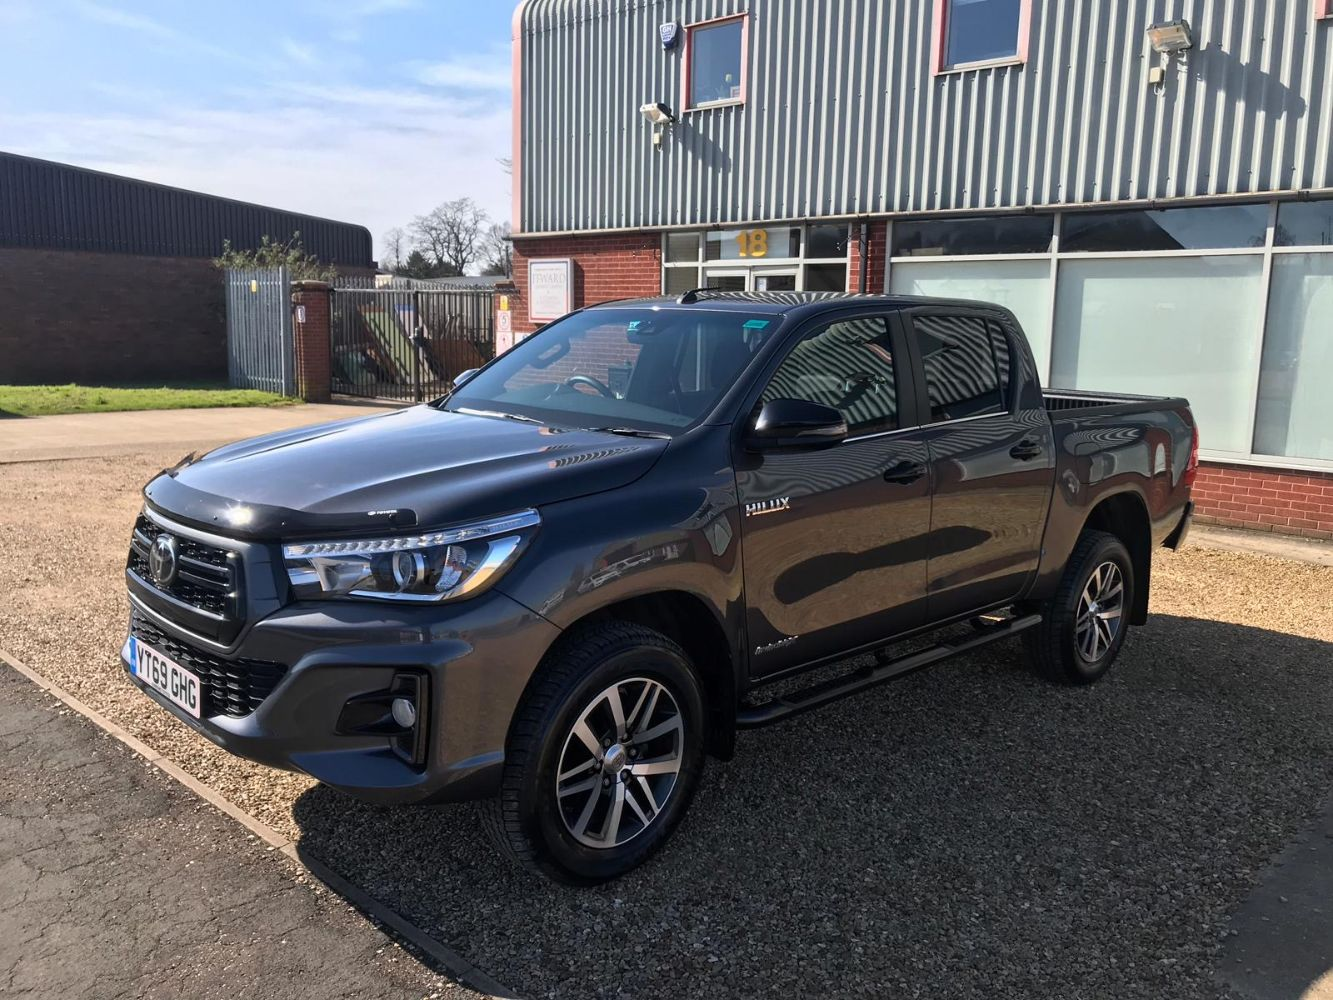 2020 Toyota Hilux *Invincible X* D/Cab Pick-Up - 2017 Mercedes-Benz Sprinter + Many More: Cars, Commercials & 4x4's !!!  *Register Now For Free*